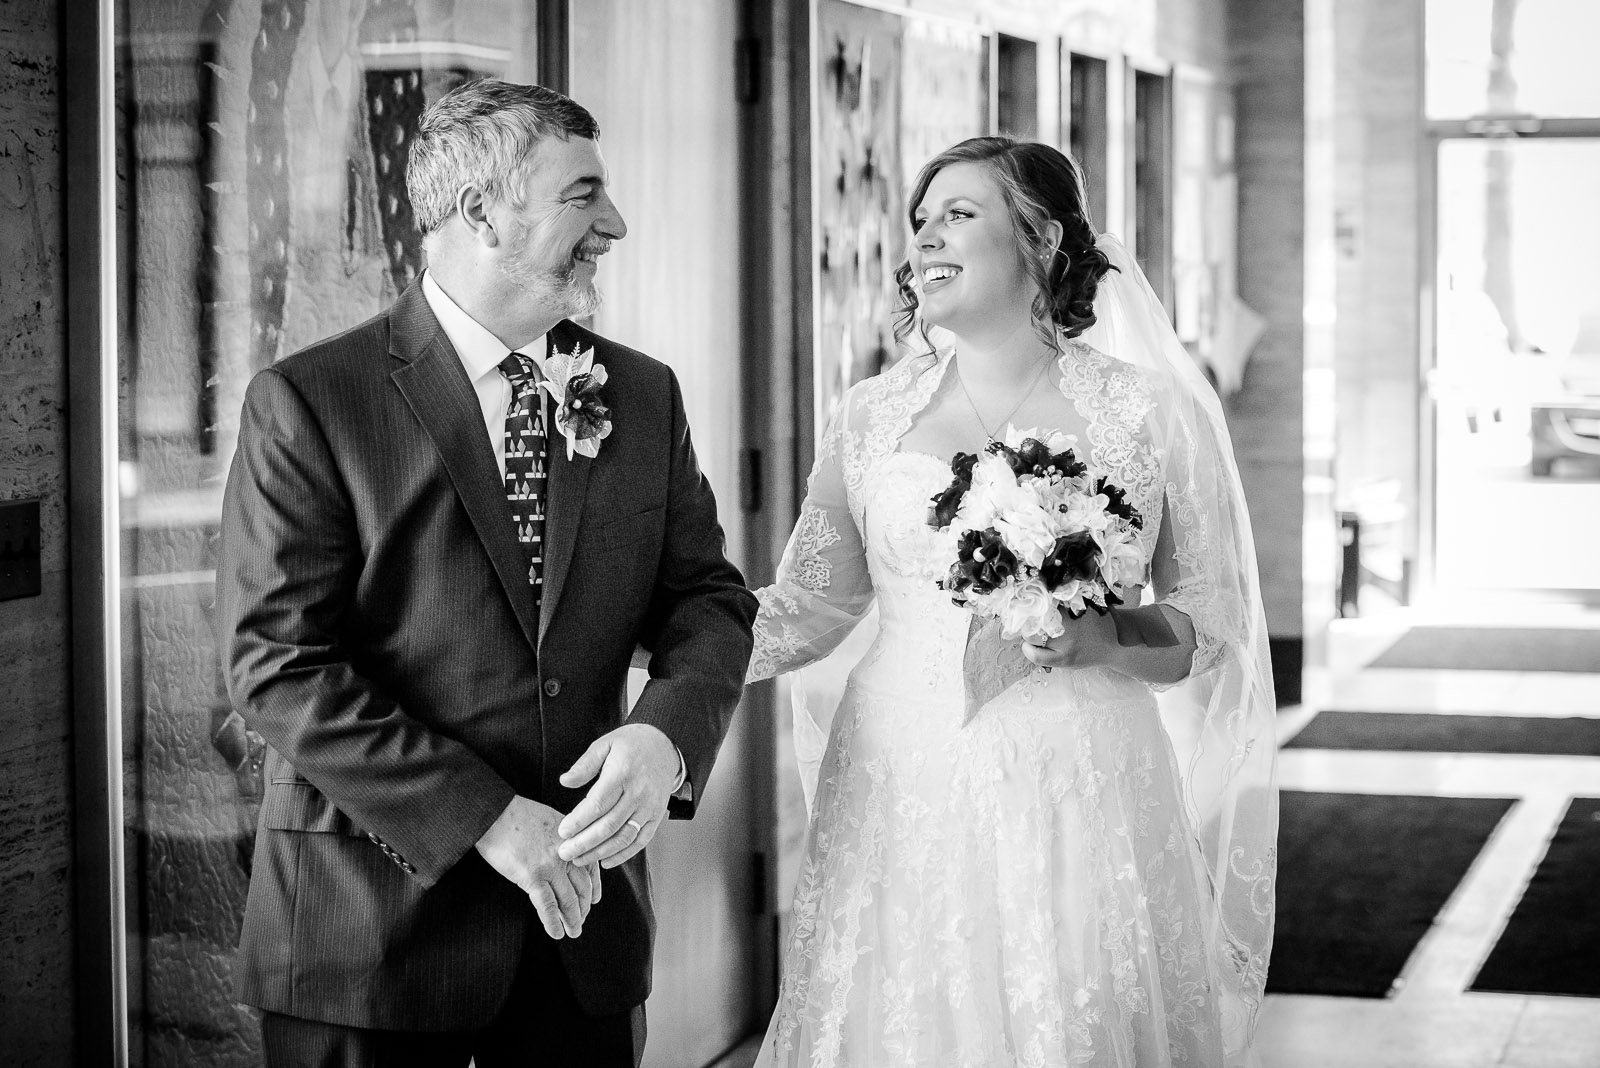 Eric_and_Christy_Photography_Blog_Wedding_Karen_Nick-3